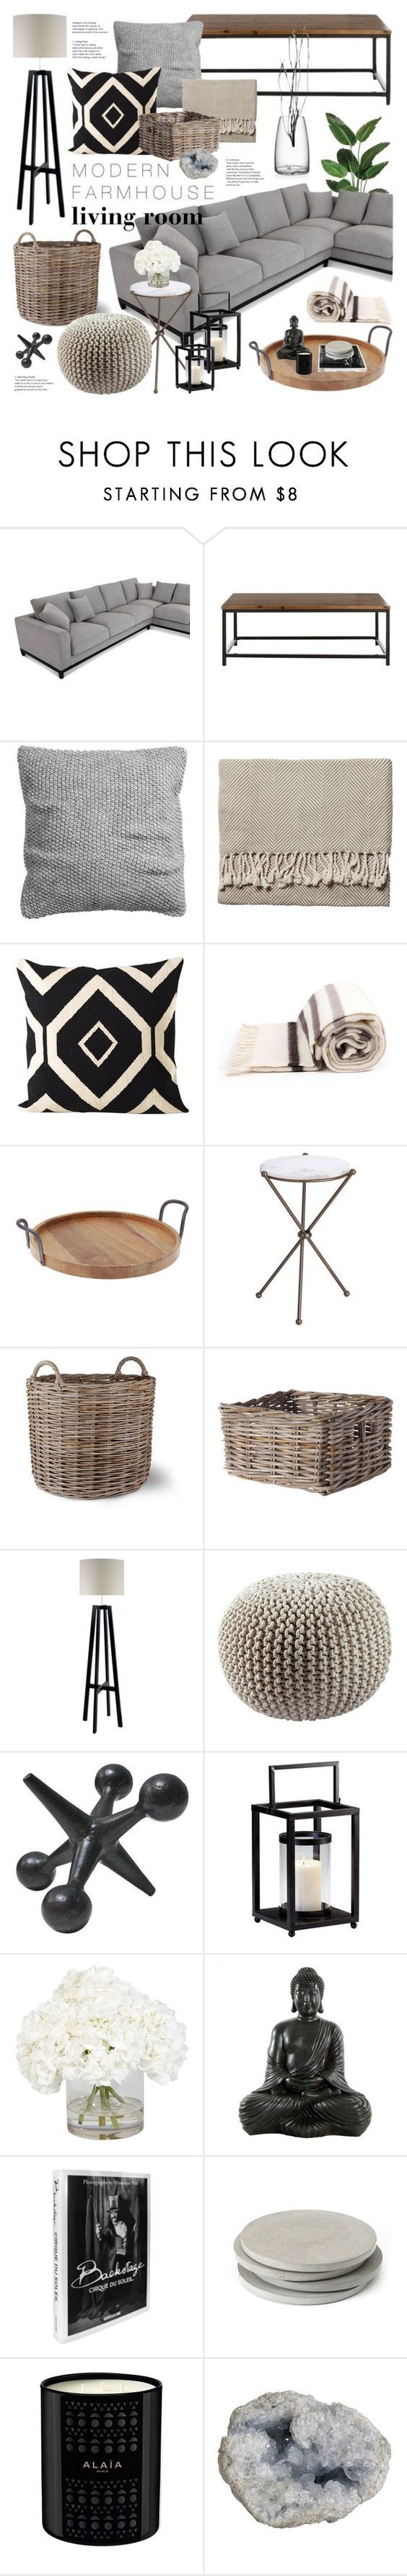 Home decor collage from january 2017 featuring currey company - Home Decor Collage From January 2017 Featuring Currey Company Interior Decor Luxury Style Ideas Home Download